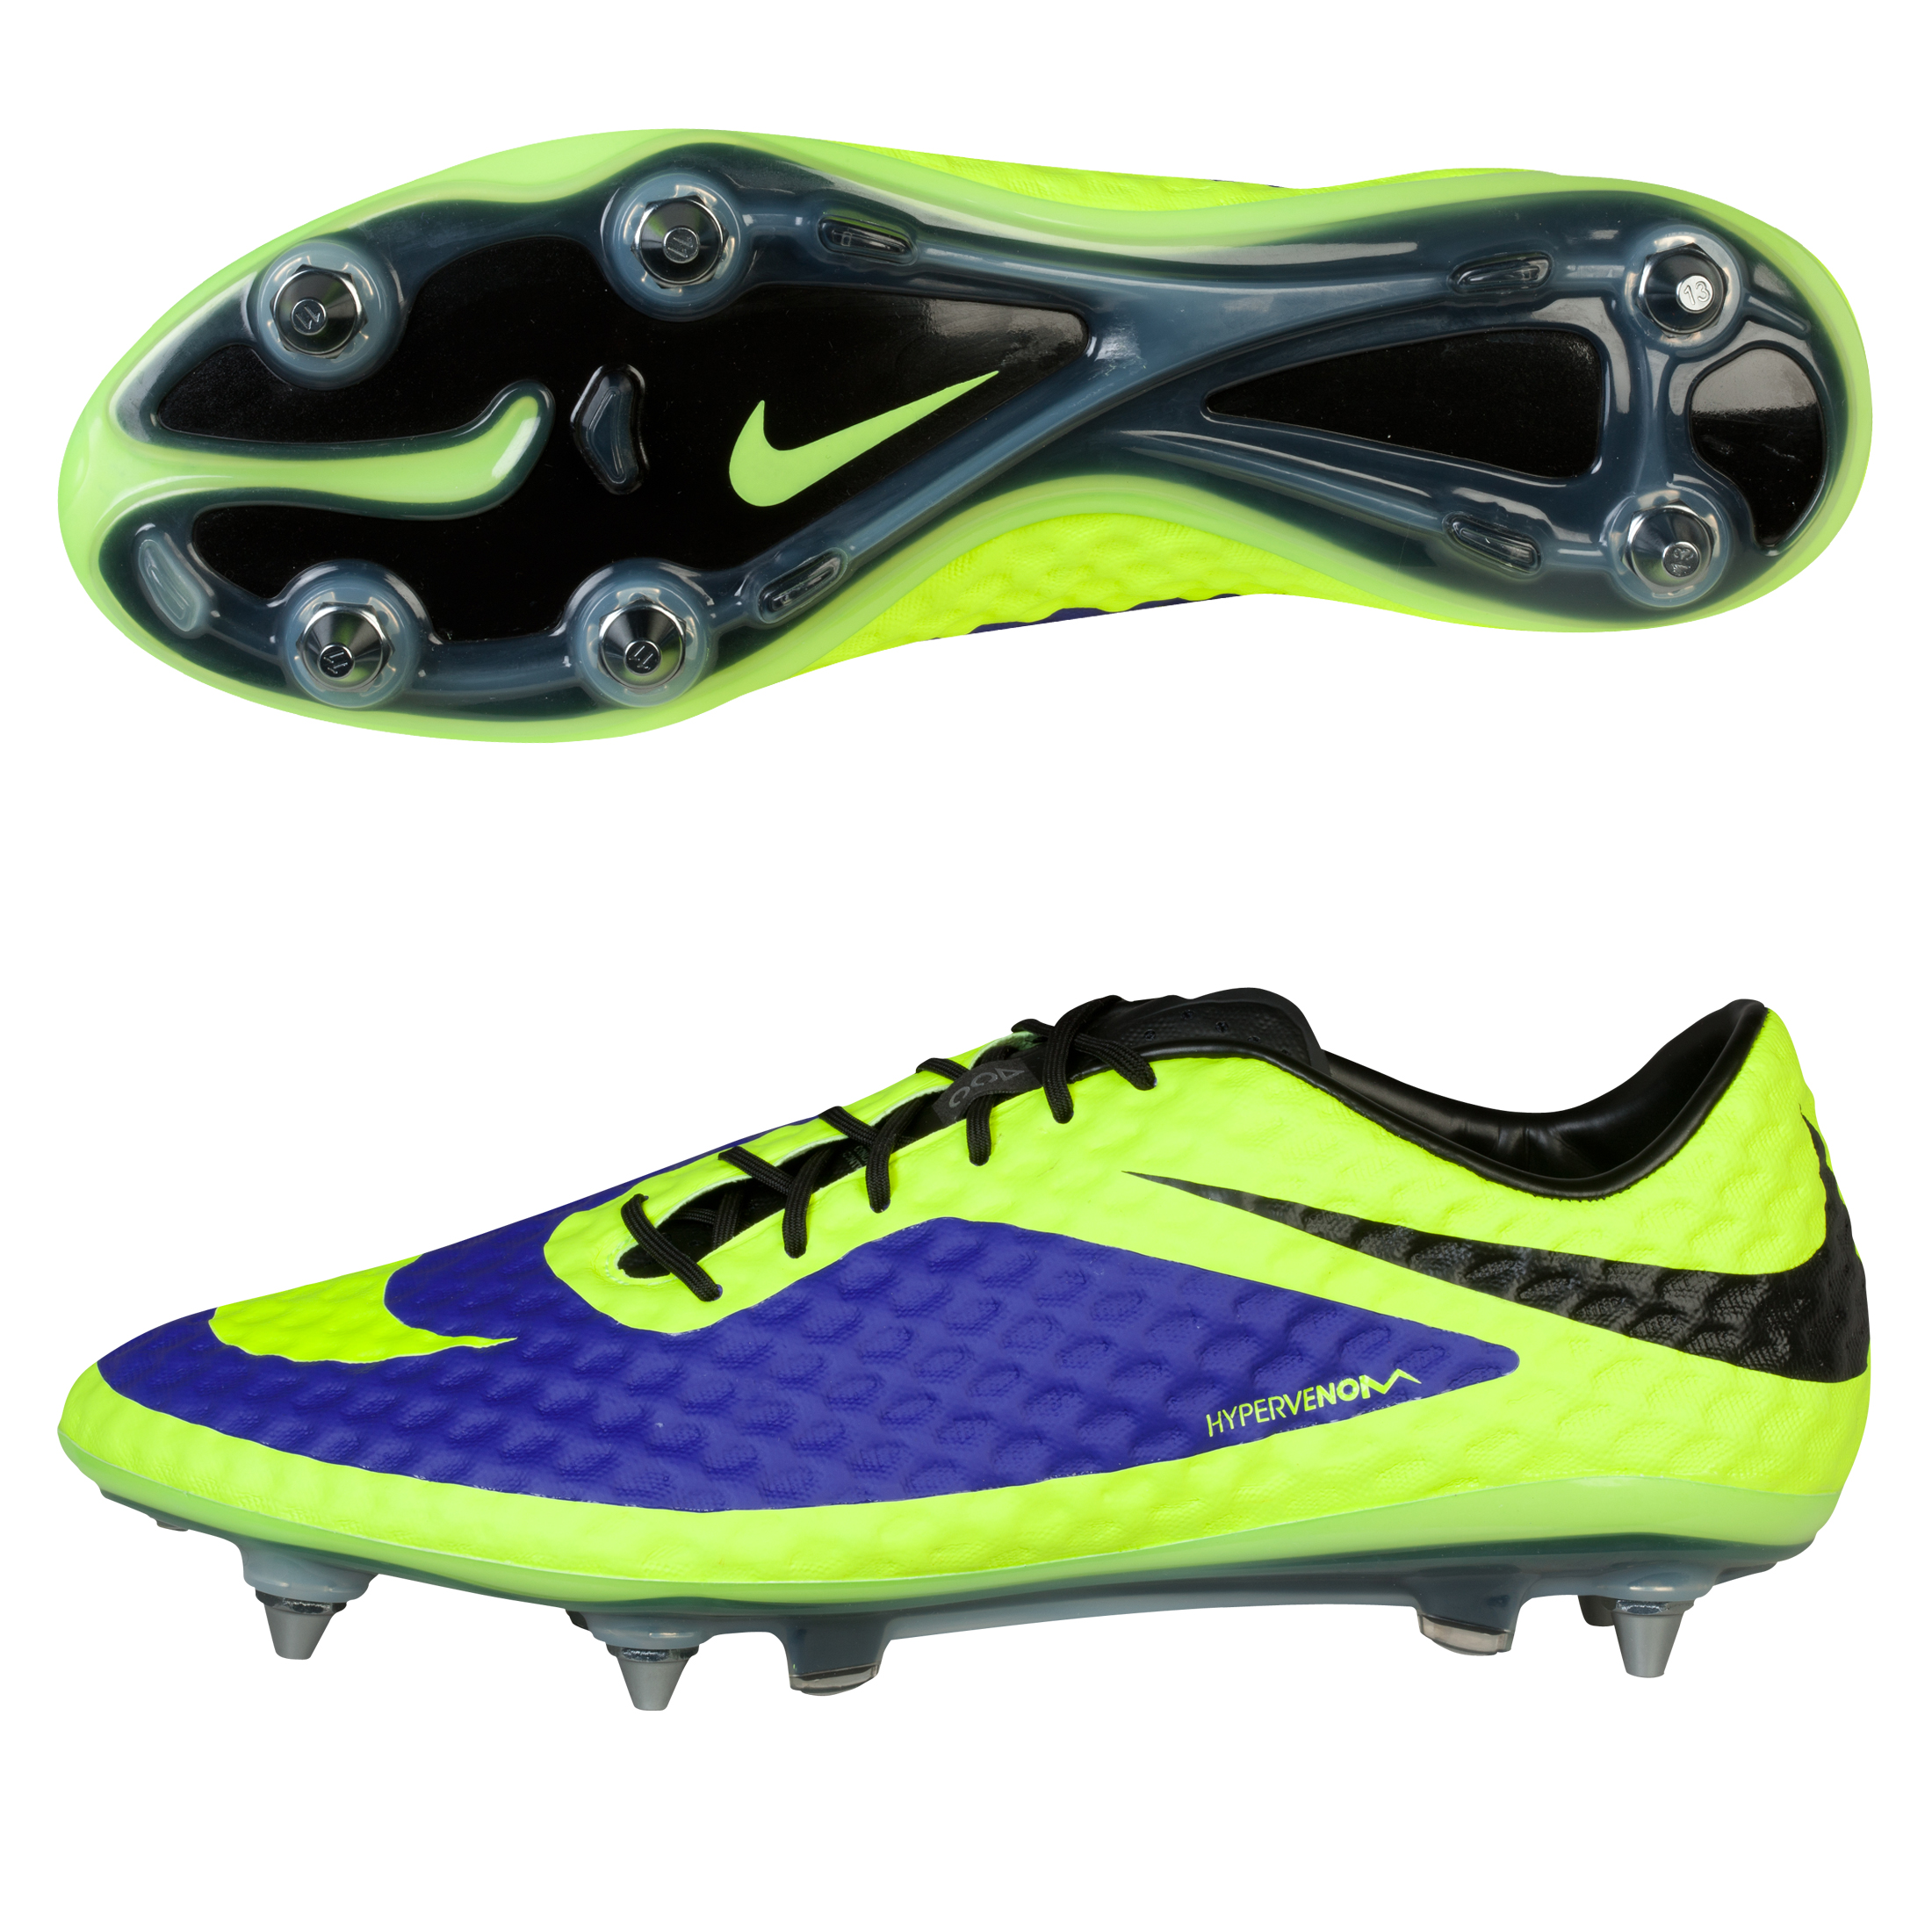 Nike Hypervenom Phantom Soft Ground-Pro-Electro Purple/Volt/Black Purple